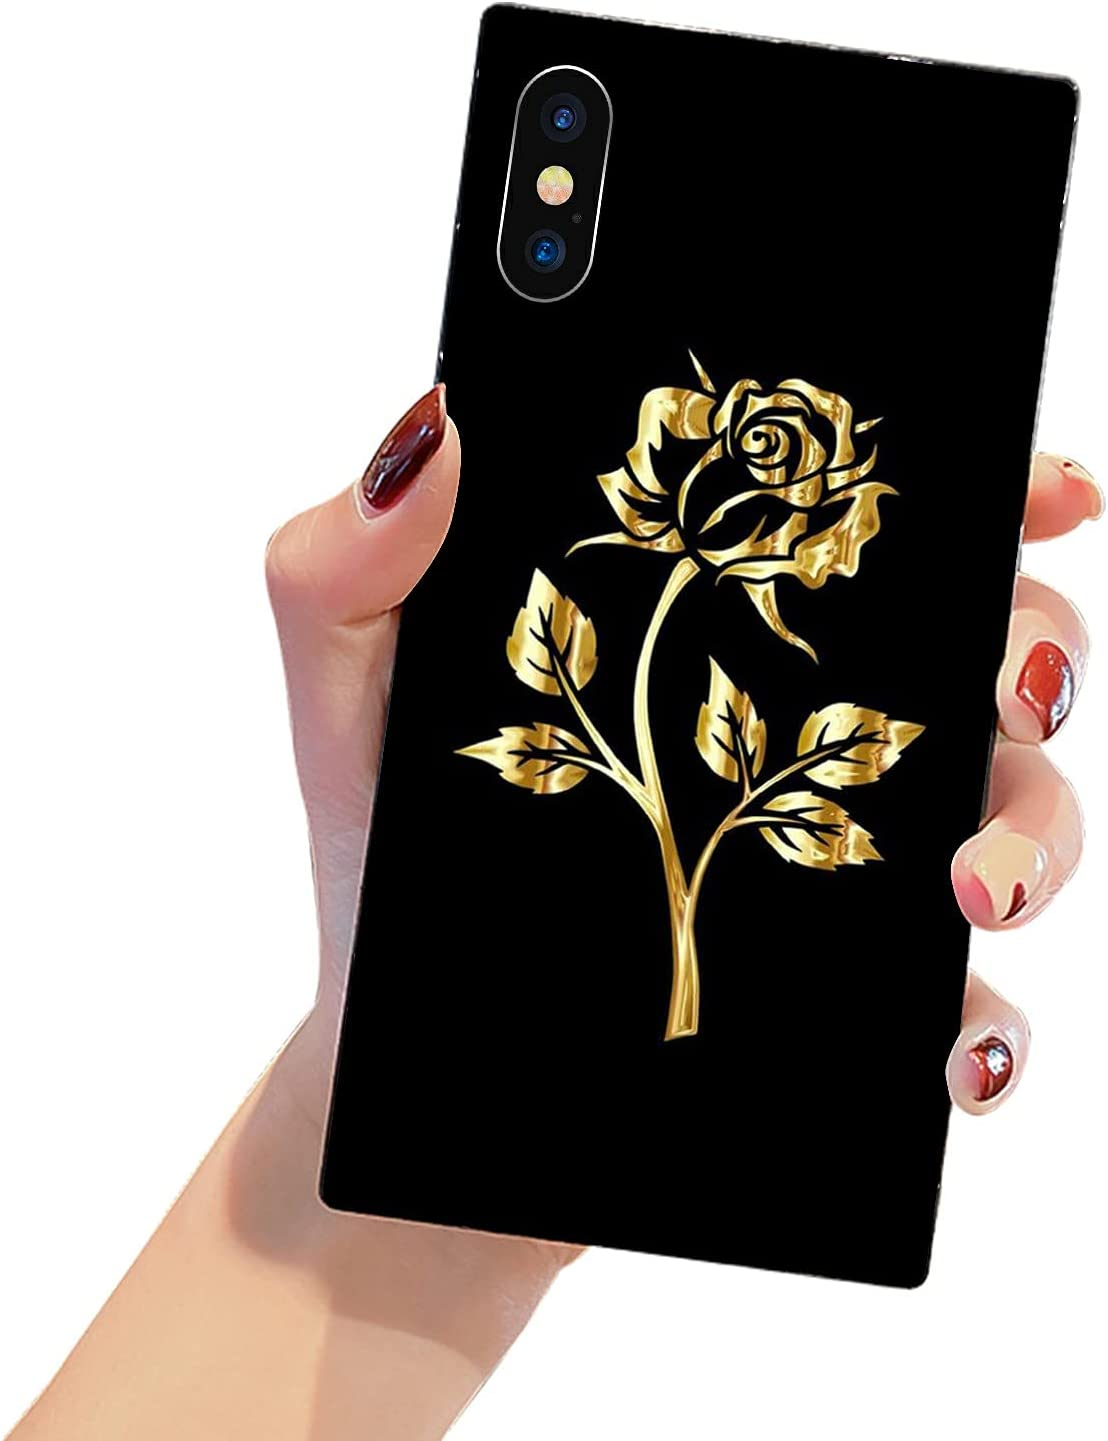 HDTST Square Edge iPhone Xs Case,Gold Rose iPhone X Cases for Women Girls,Hard PC Pattern Design Back Cover+Soft TPU Bumper Frame Support Case for iPhone X/Xs Gold Rose Flowers